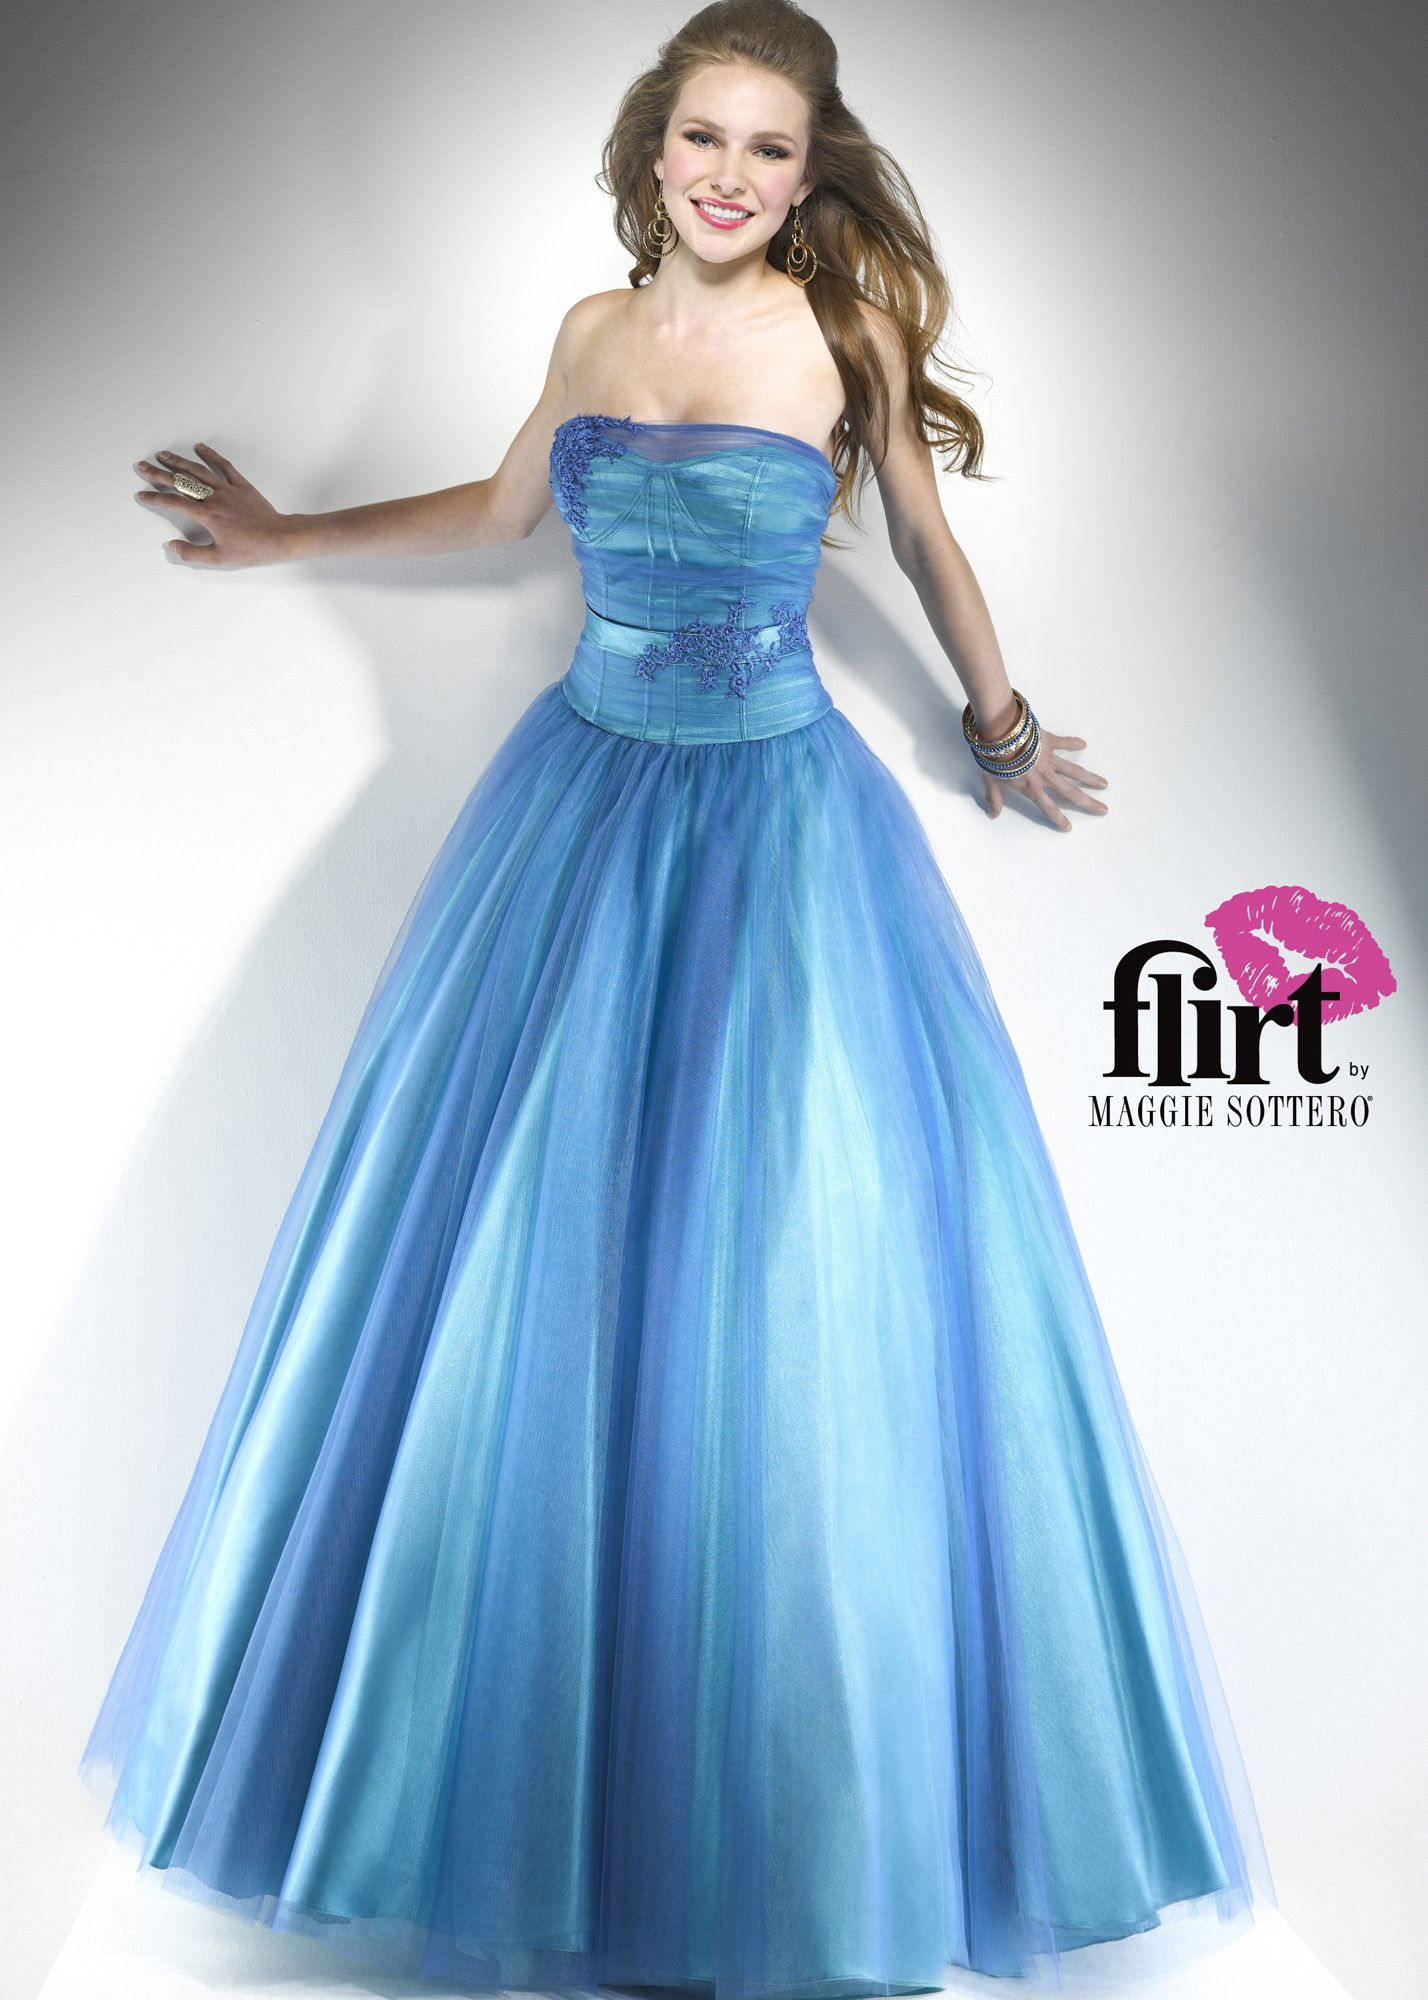 This prom dress reminds us of Alice in Wonderland! - Flirt by ...